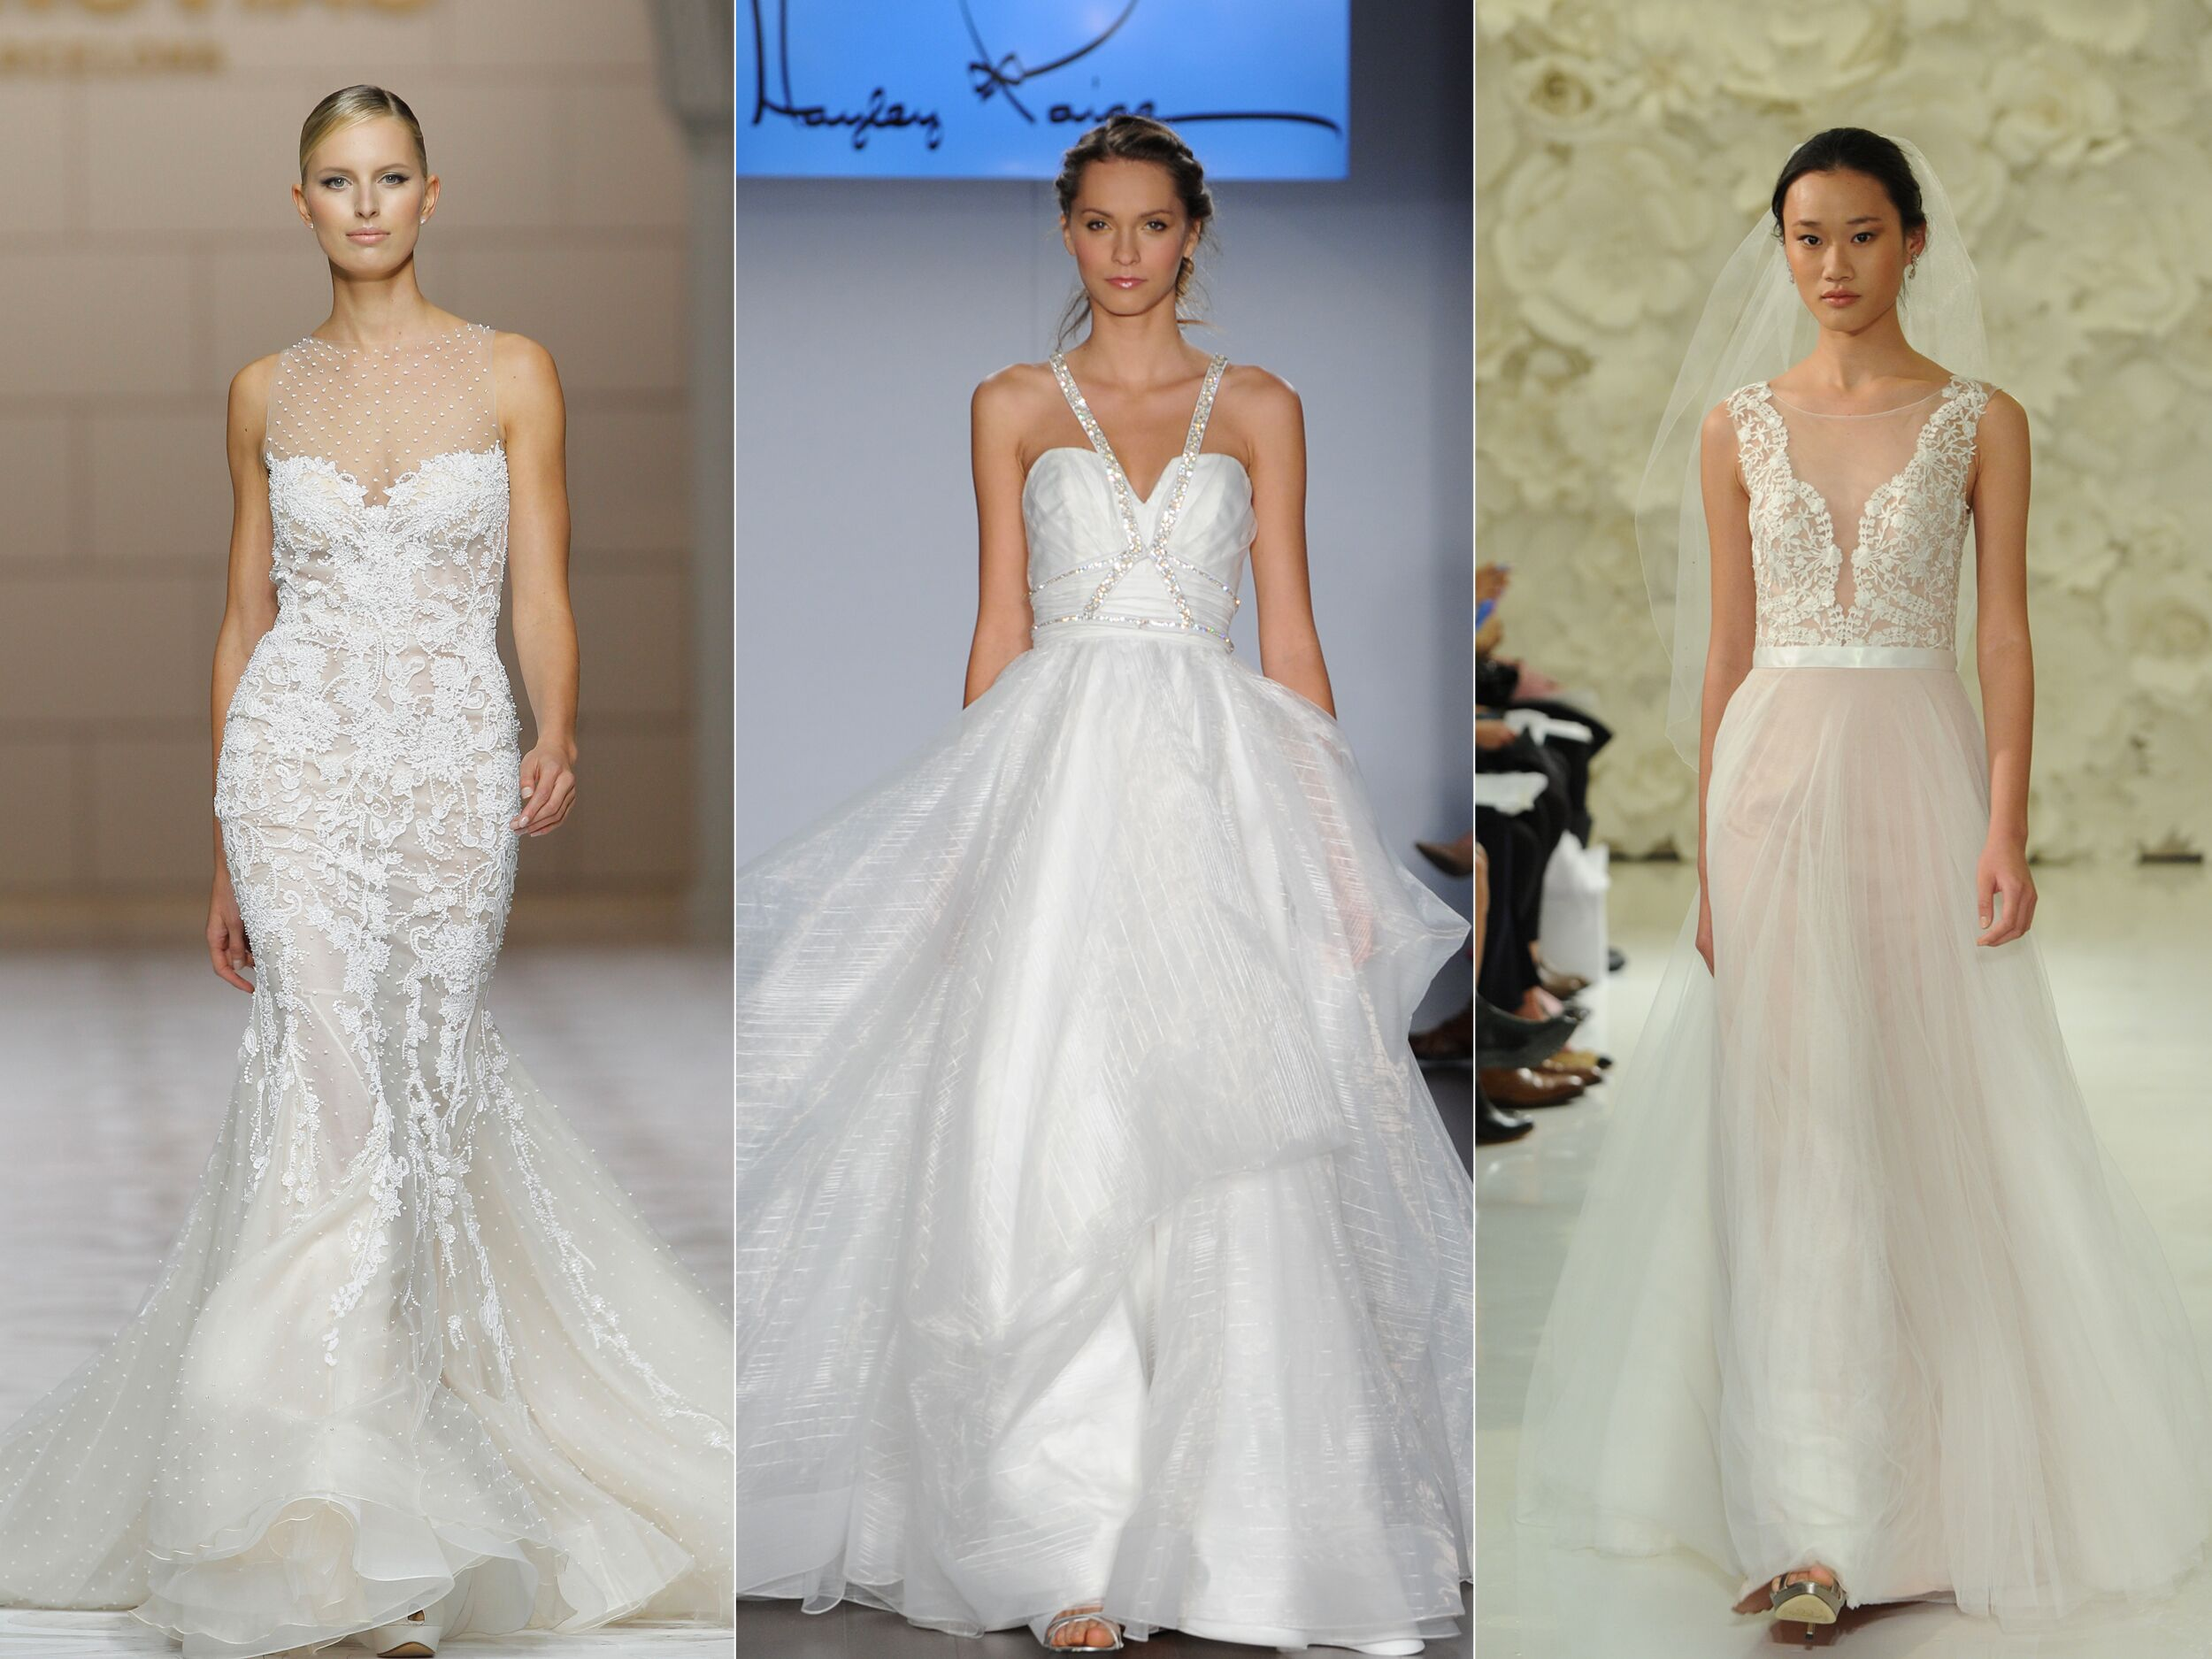 Wedding Dresses From Last Bridal Fashion Week You Can Shop